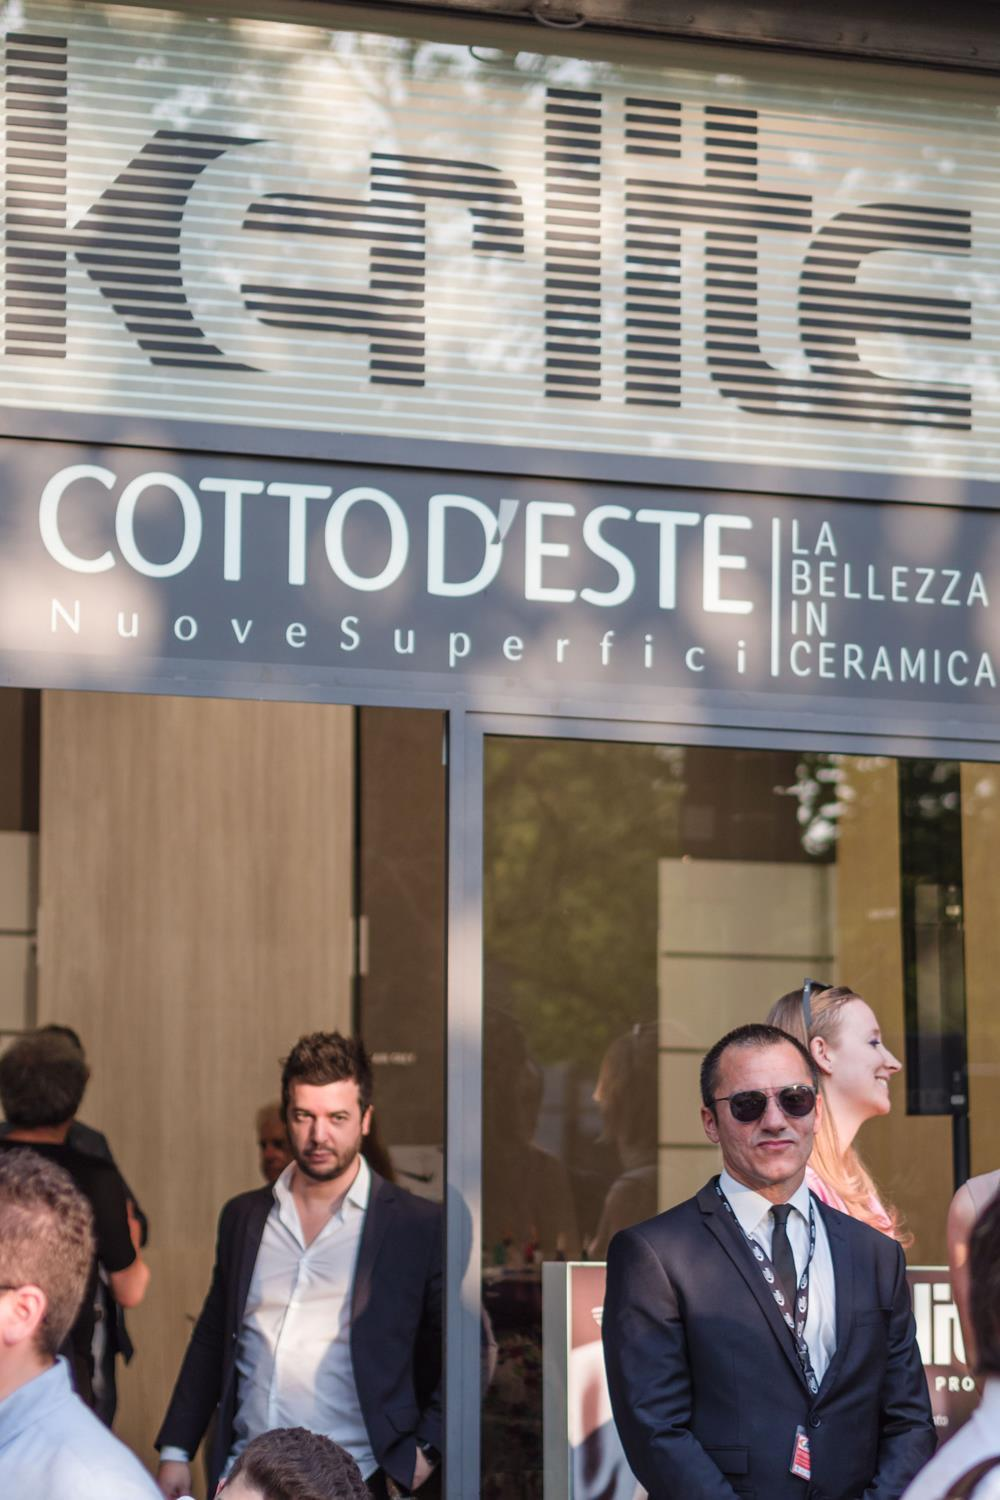 Cotto d'Este al Fuorisalone - Night out: Foto 1